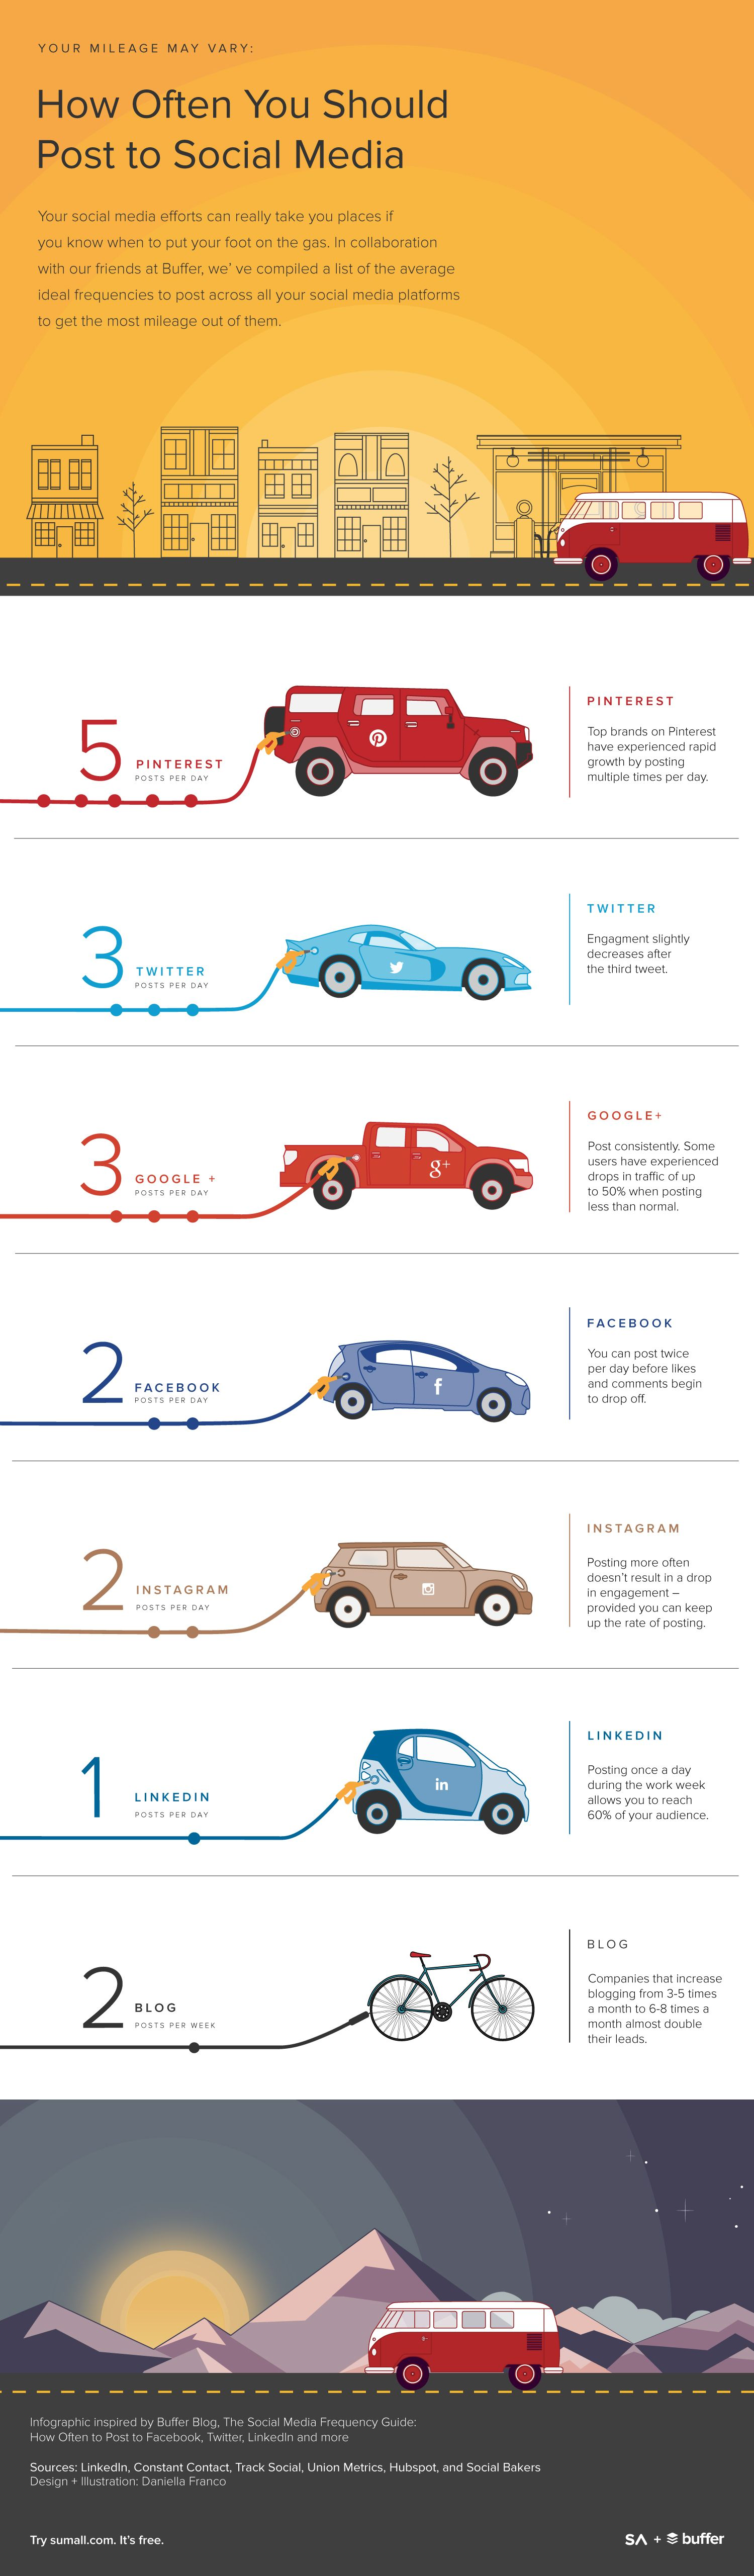 #Social #Infographic: How Often Should You Post to Social Media - Have you ever woken up in a cold sweat in the middle of the night wondering exactly how many posts you should be making to Pinterest to get the most engagement, or why you shouldn't be make more than three...  Read more »